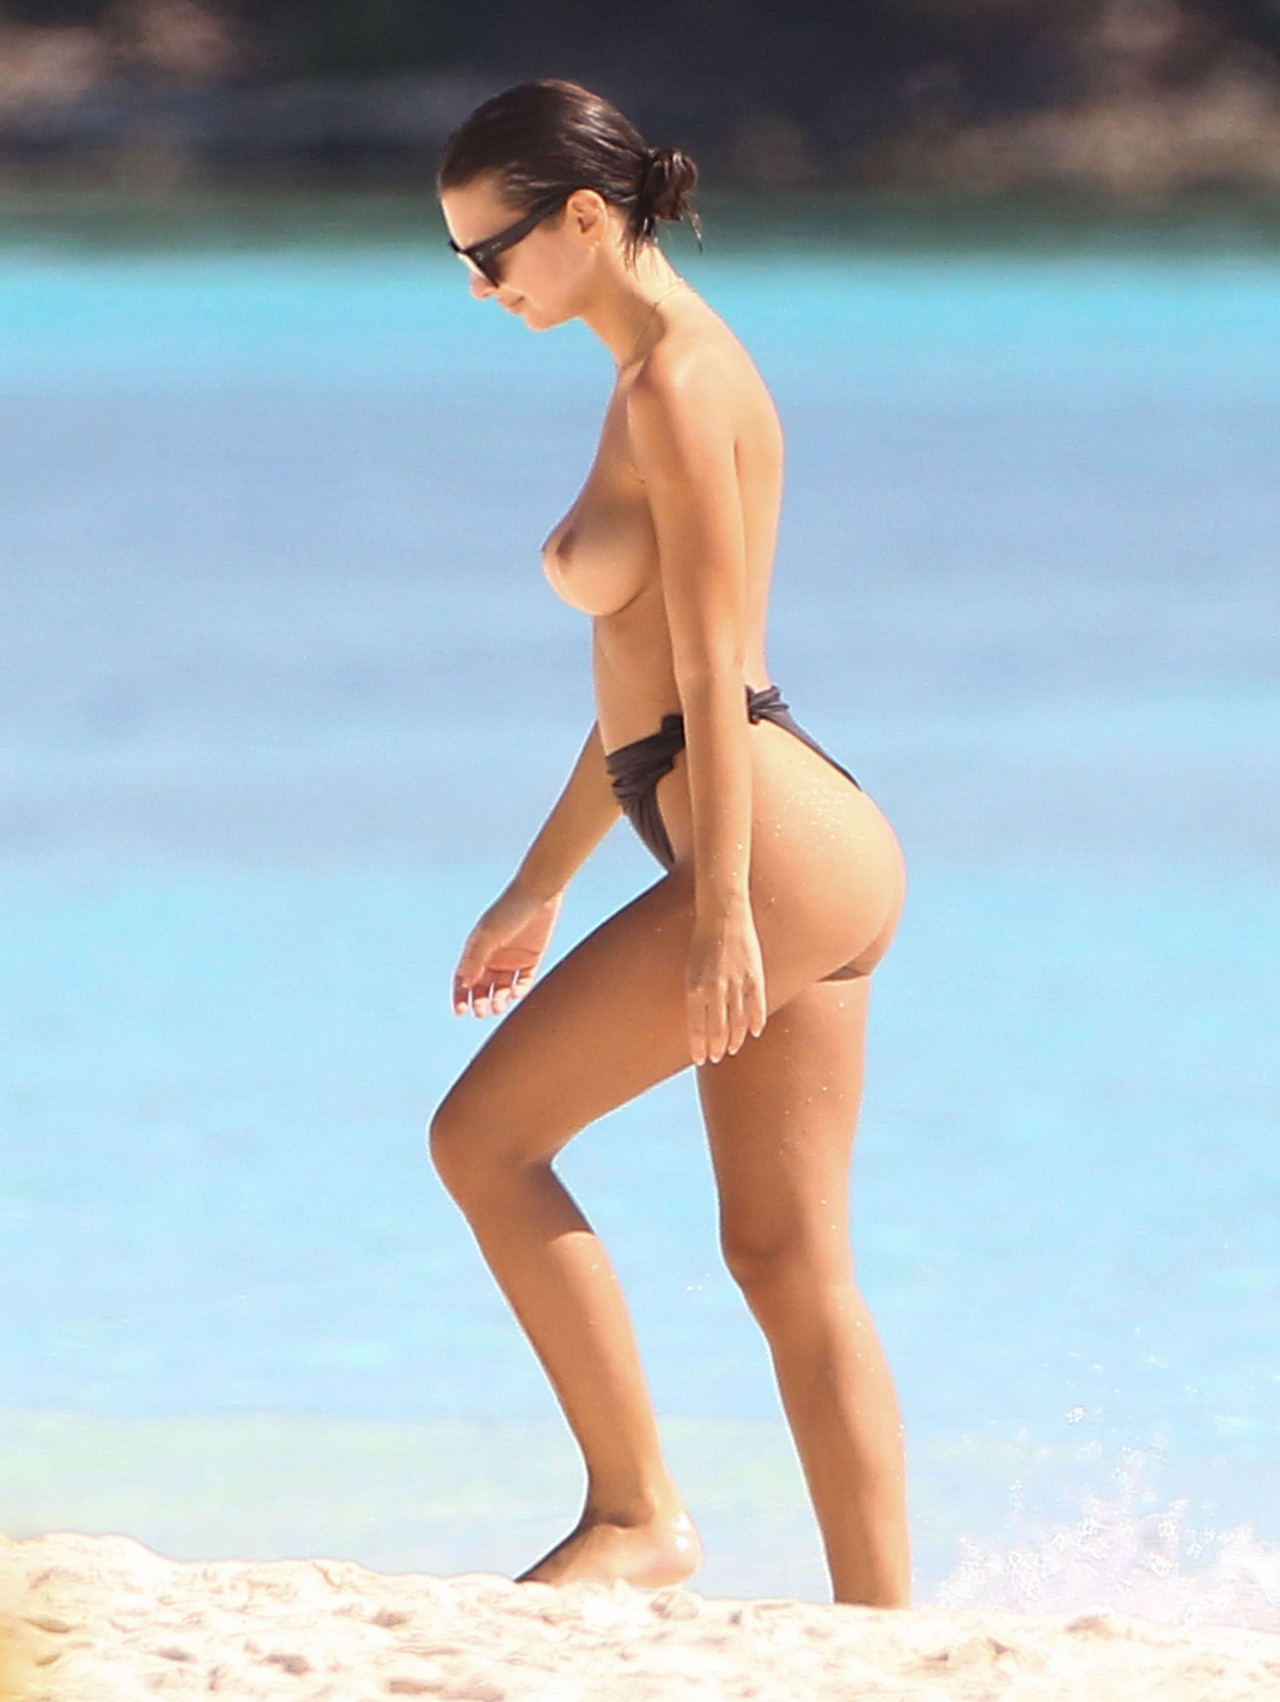 Sexy Emily Ratajkowski (actress) walking down the beach with her big #hooters / #tits topless